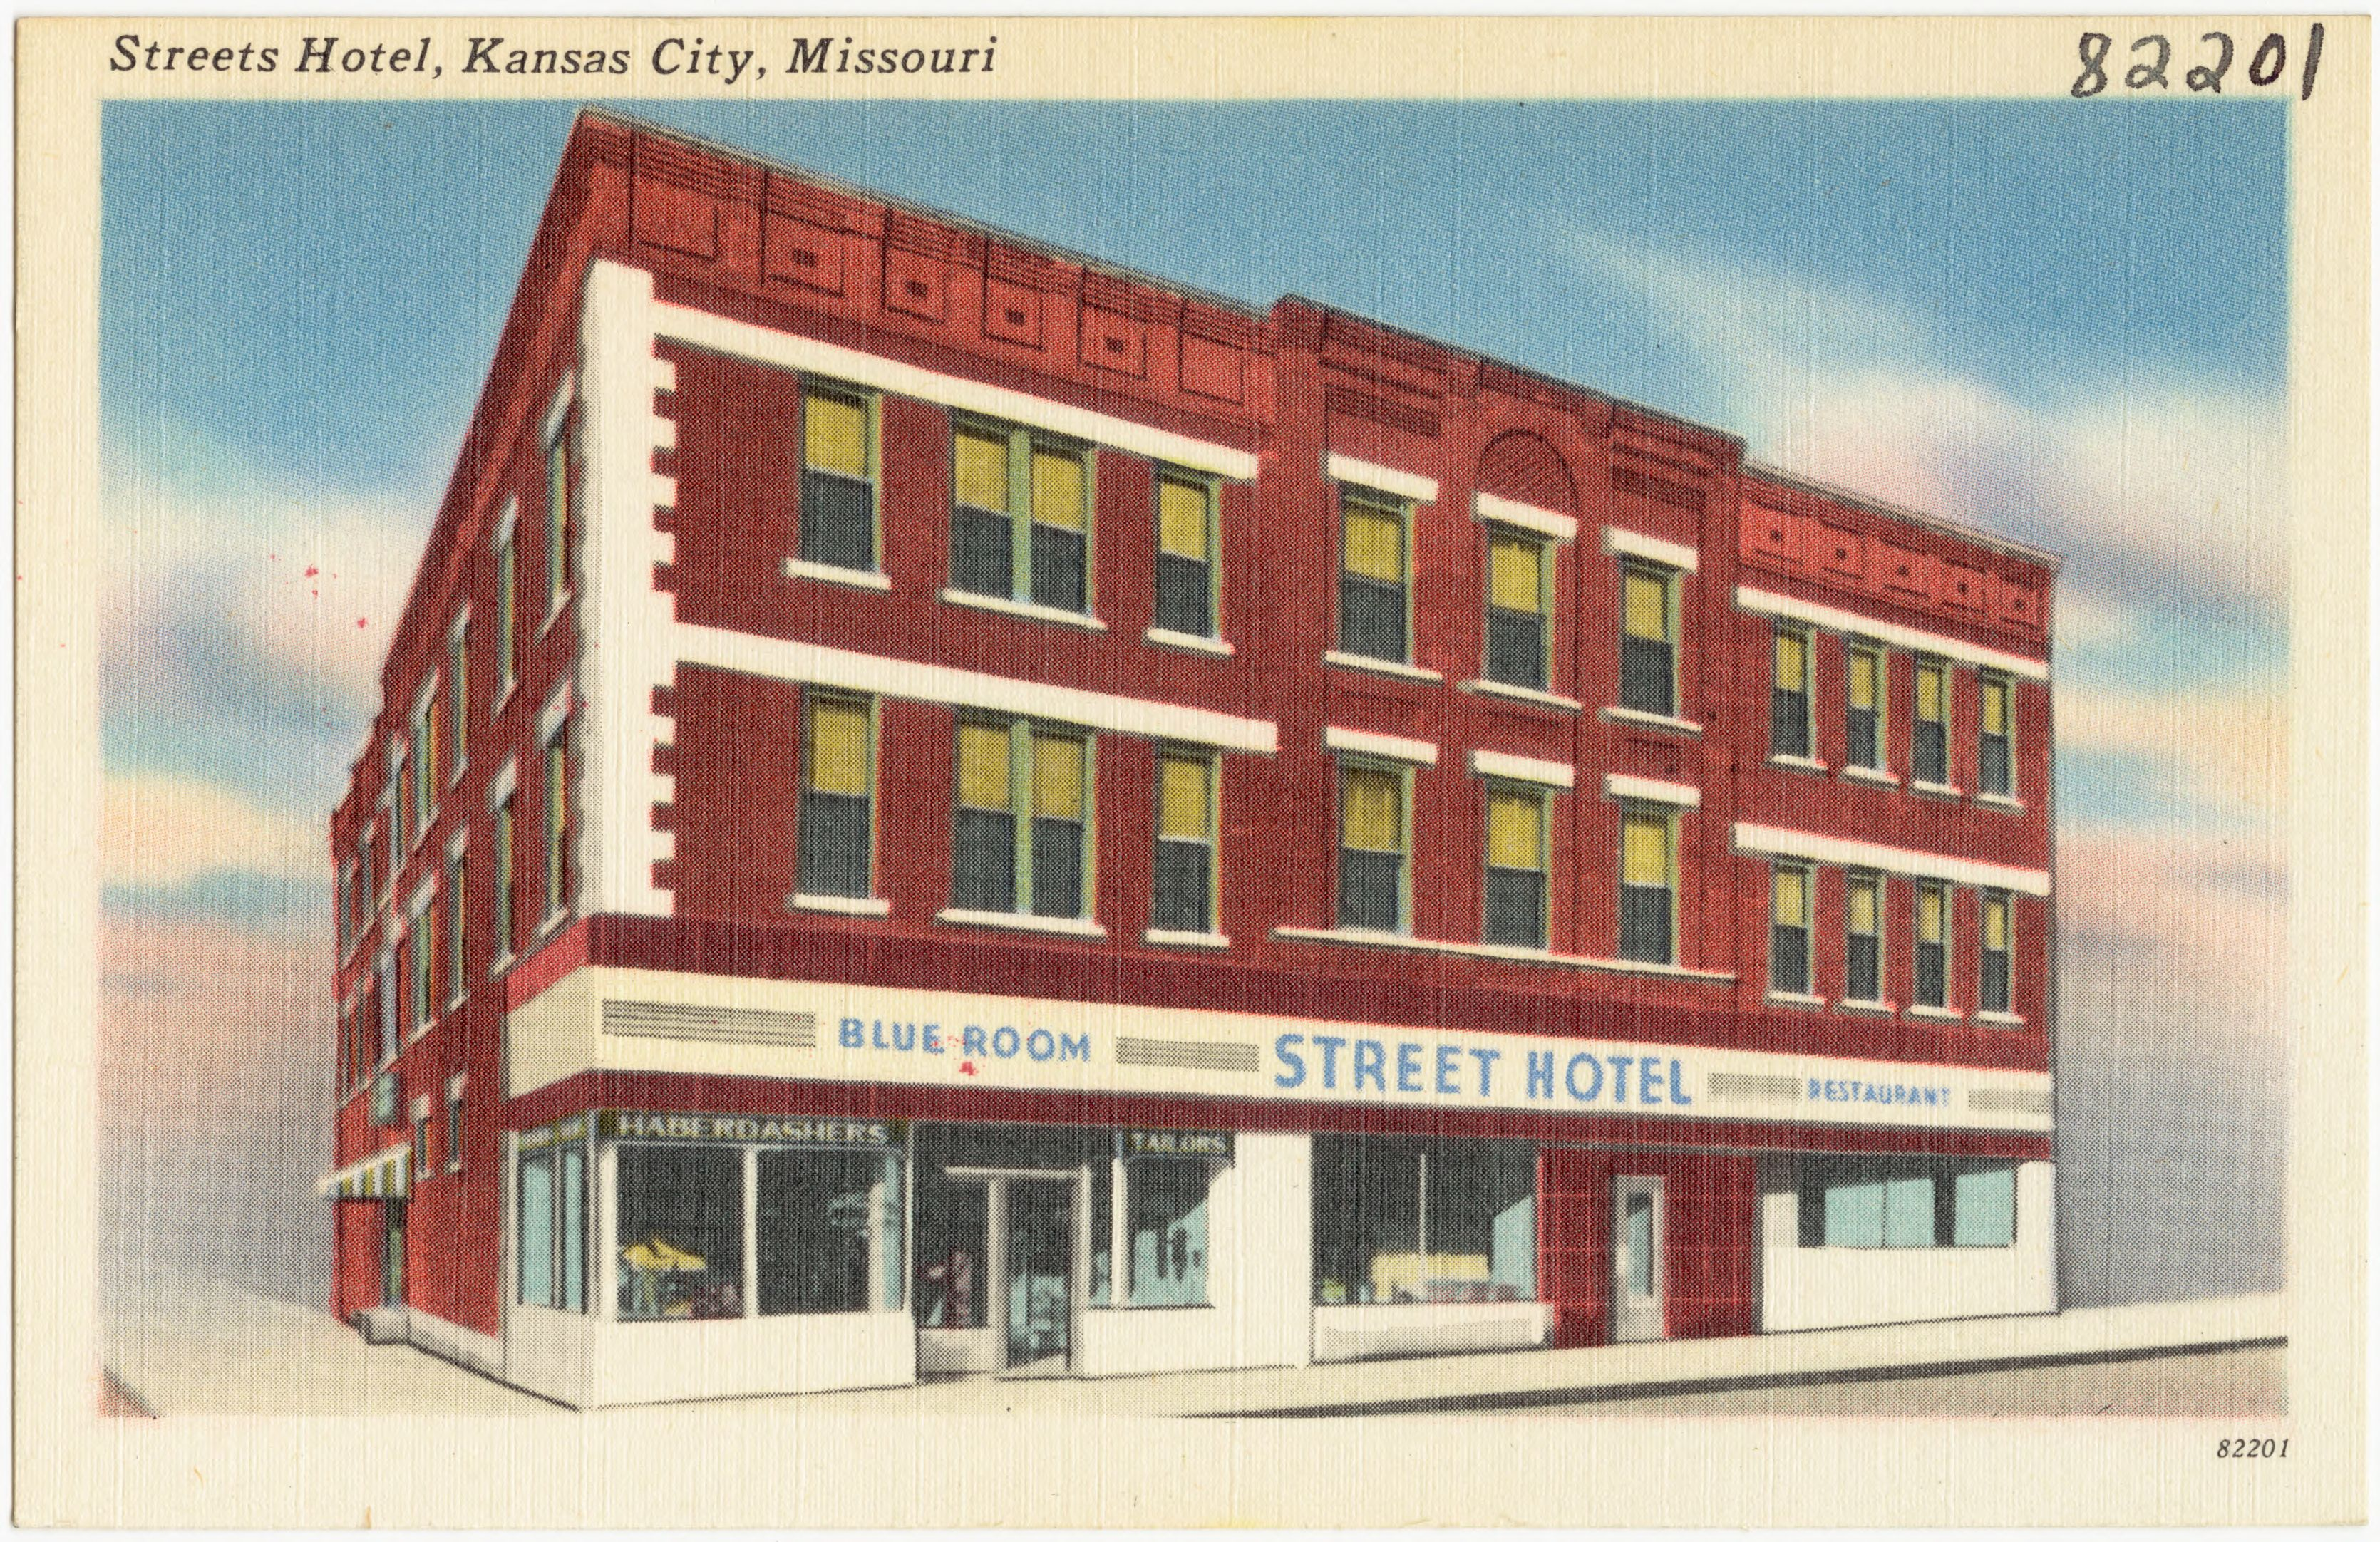 Street's Hotel, as it was known, was owned by Reuben and Ella Davidson Street. The Blue Room was a major venue in the city's jazz scene.